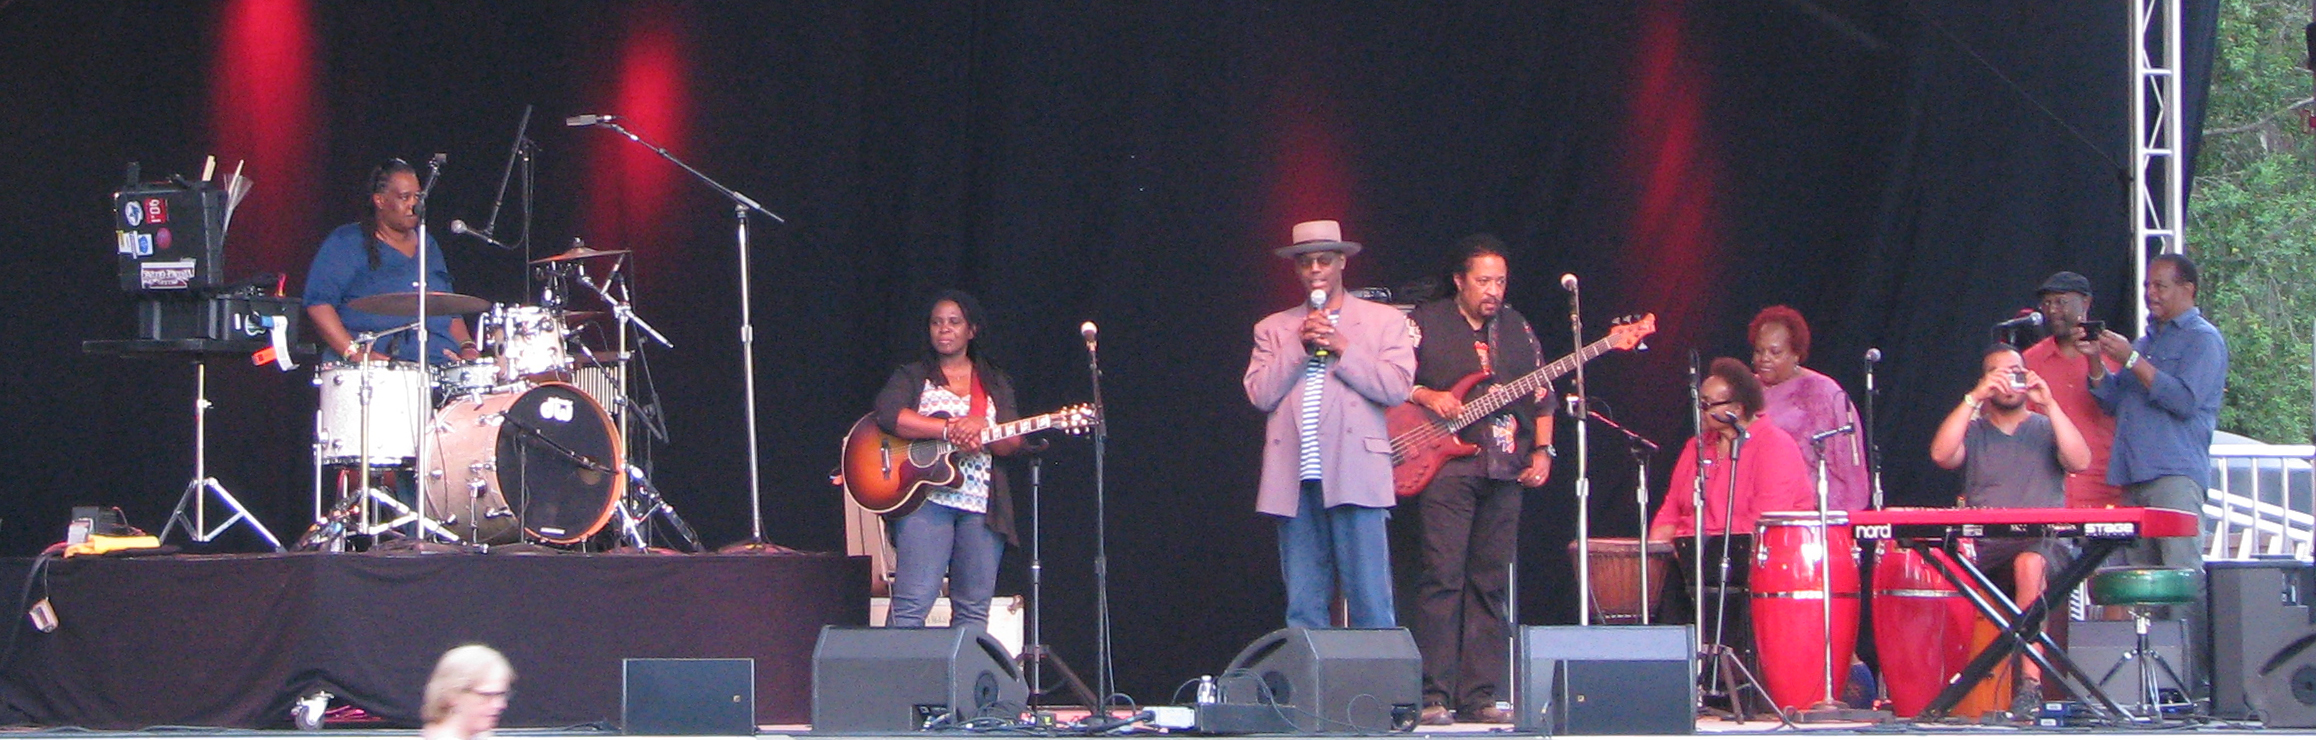 Linda Tillery & The Cultural Heritage Choir with guests Ruthie Foster and Eric Bibb